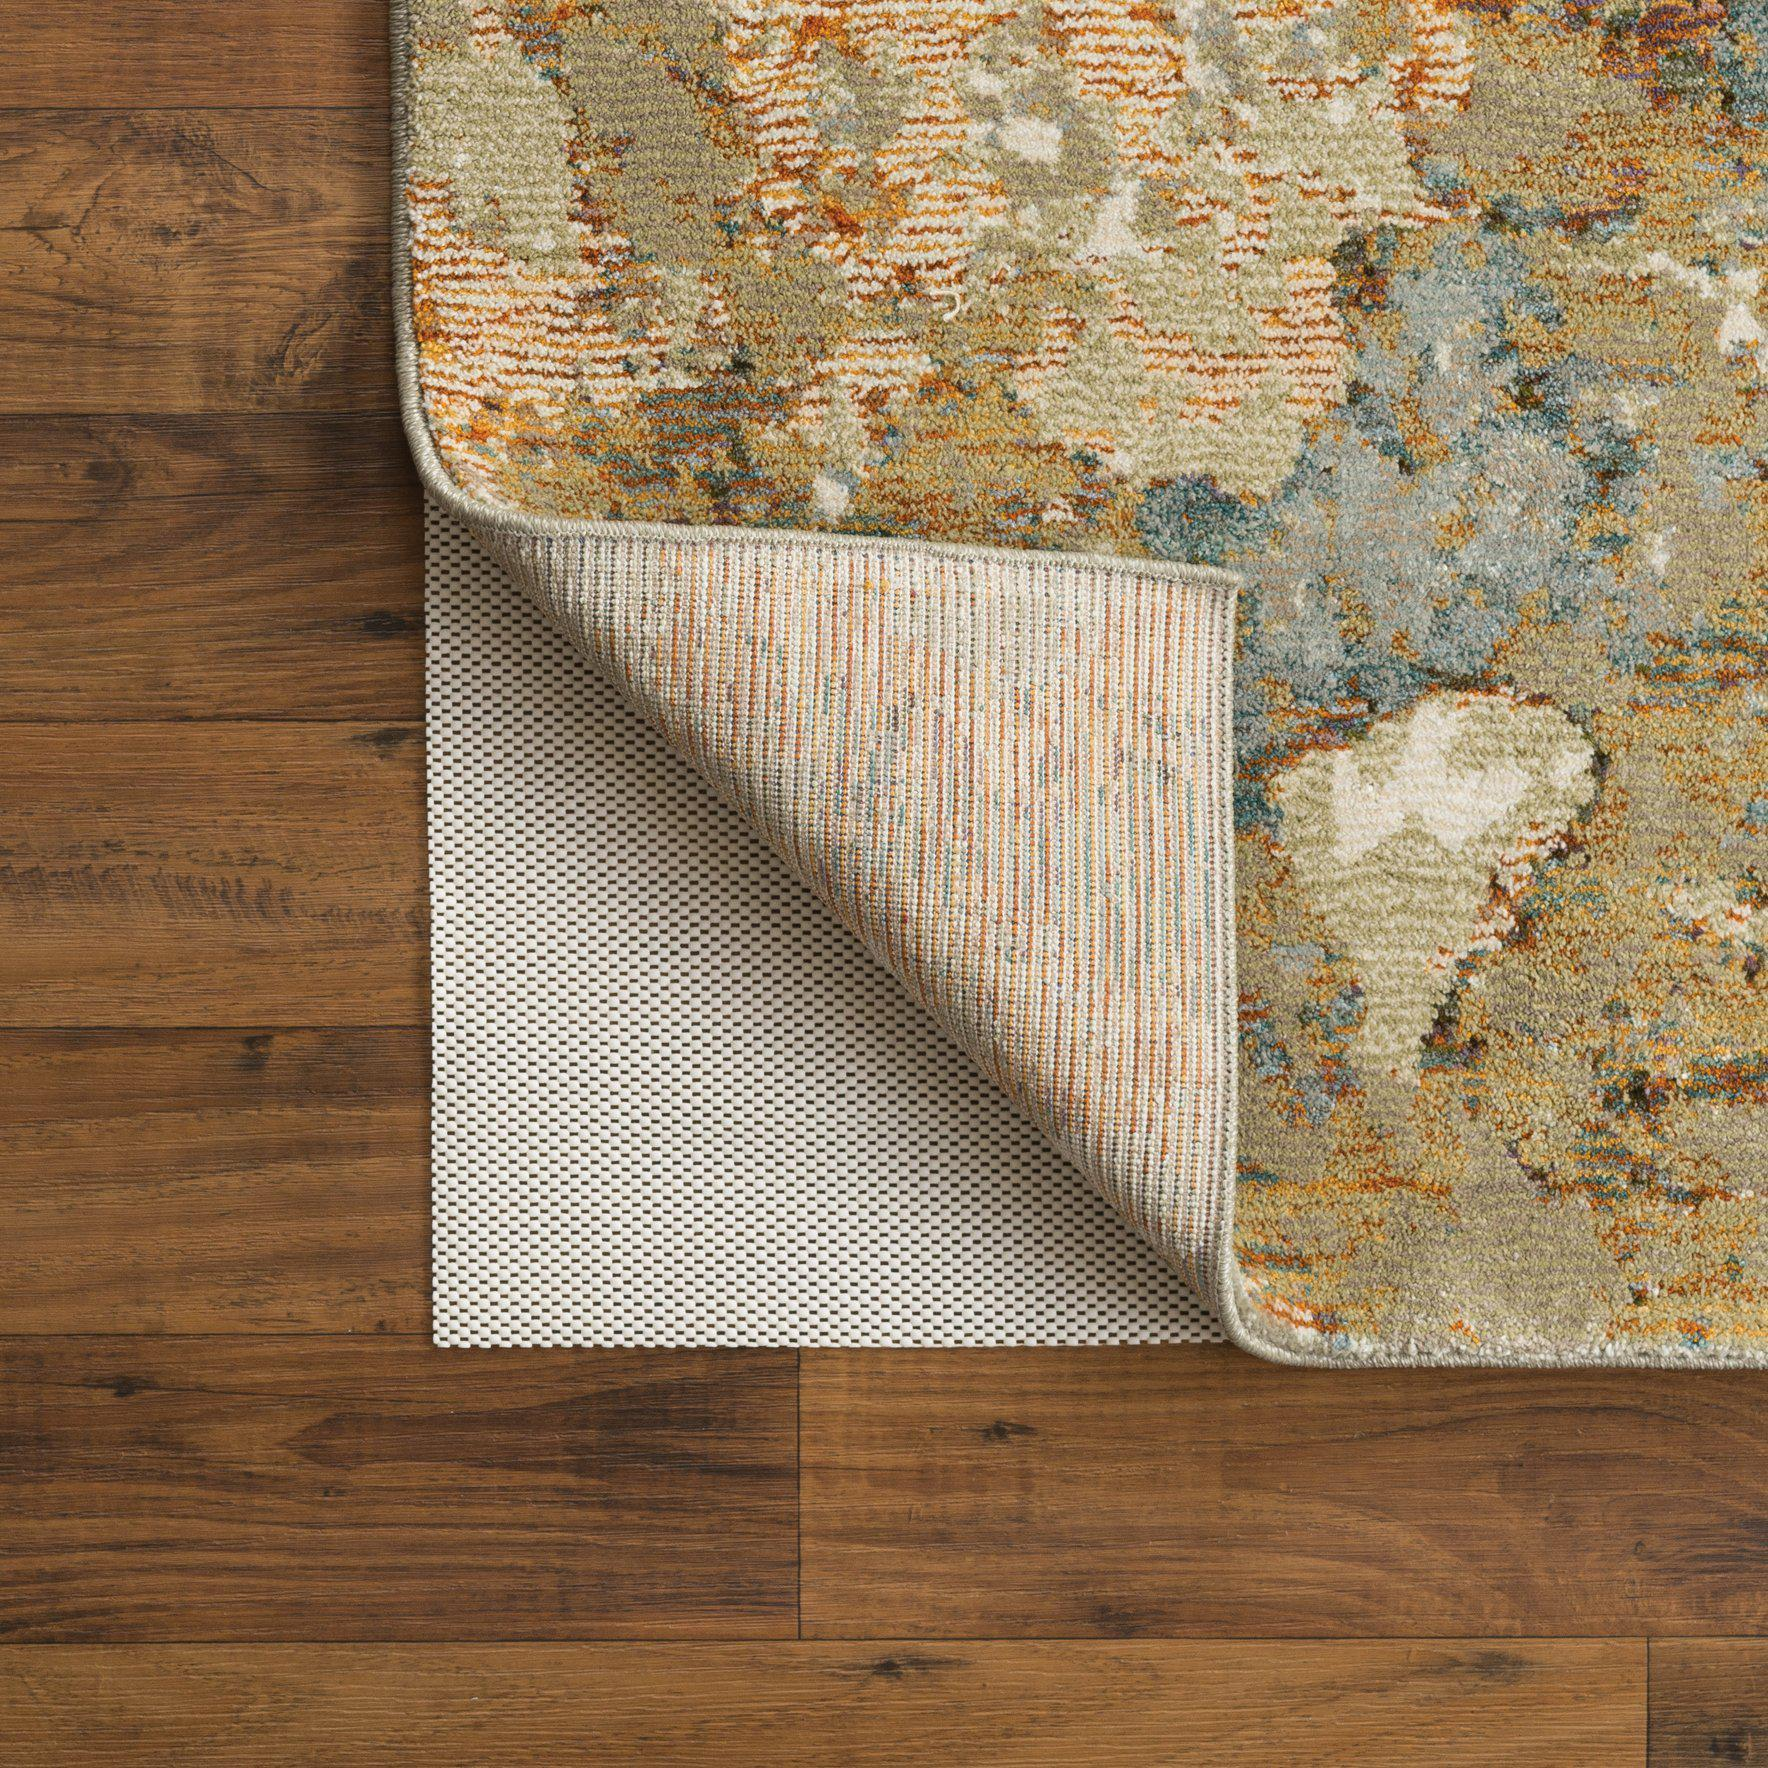 Gold Rug Pad-Rug Pad-The Rug Truck-2x8-The Rug Truck